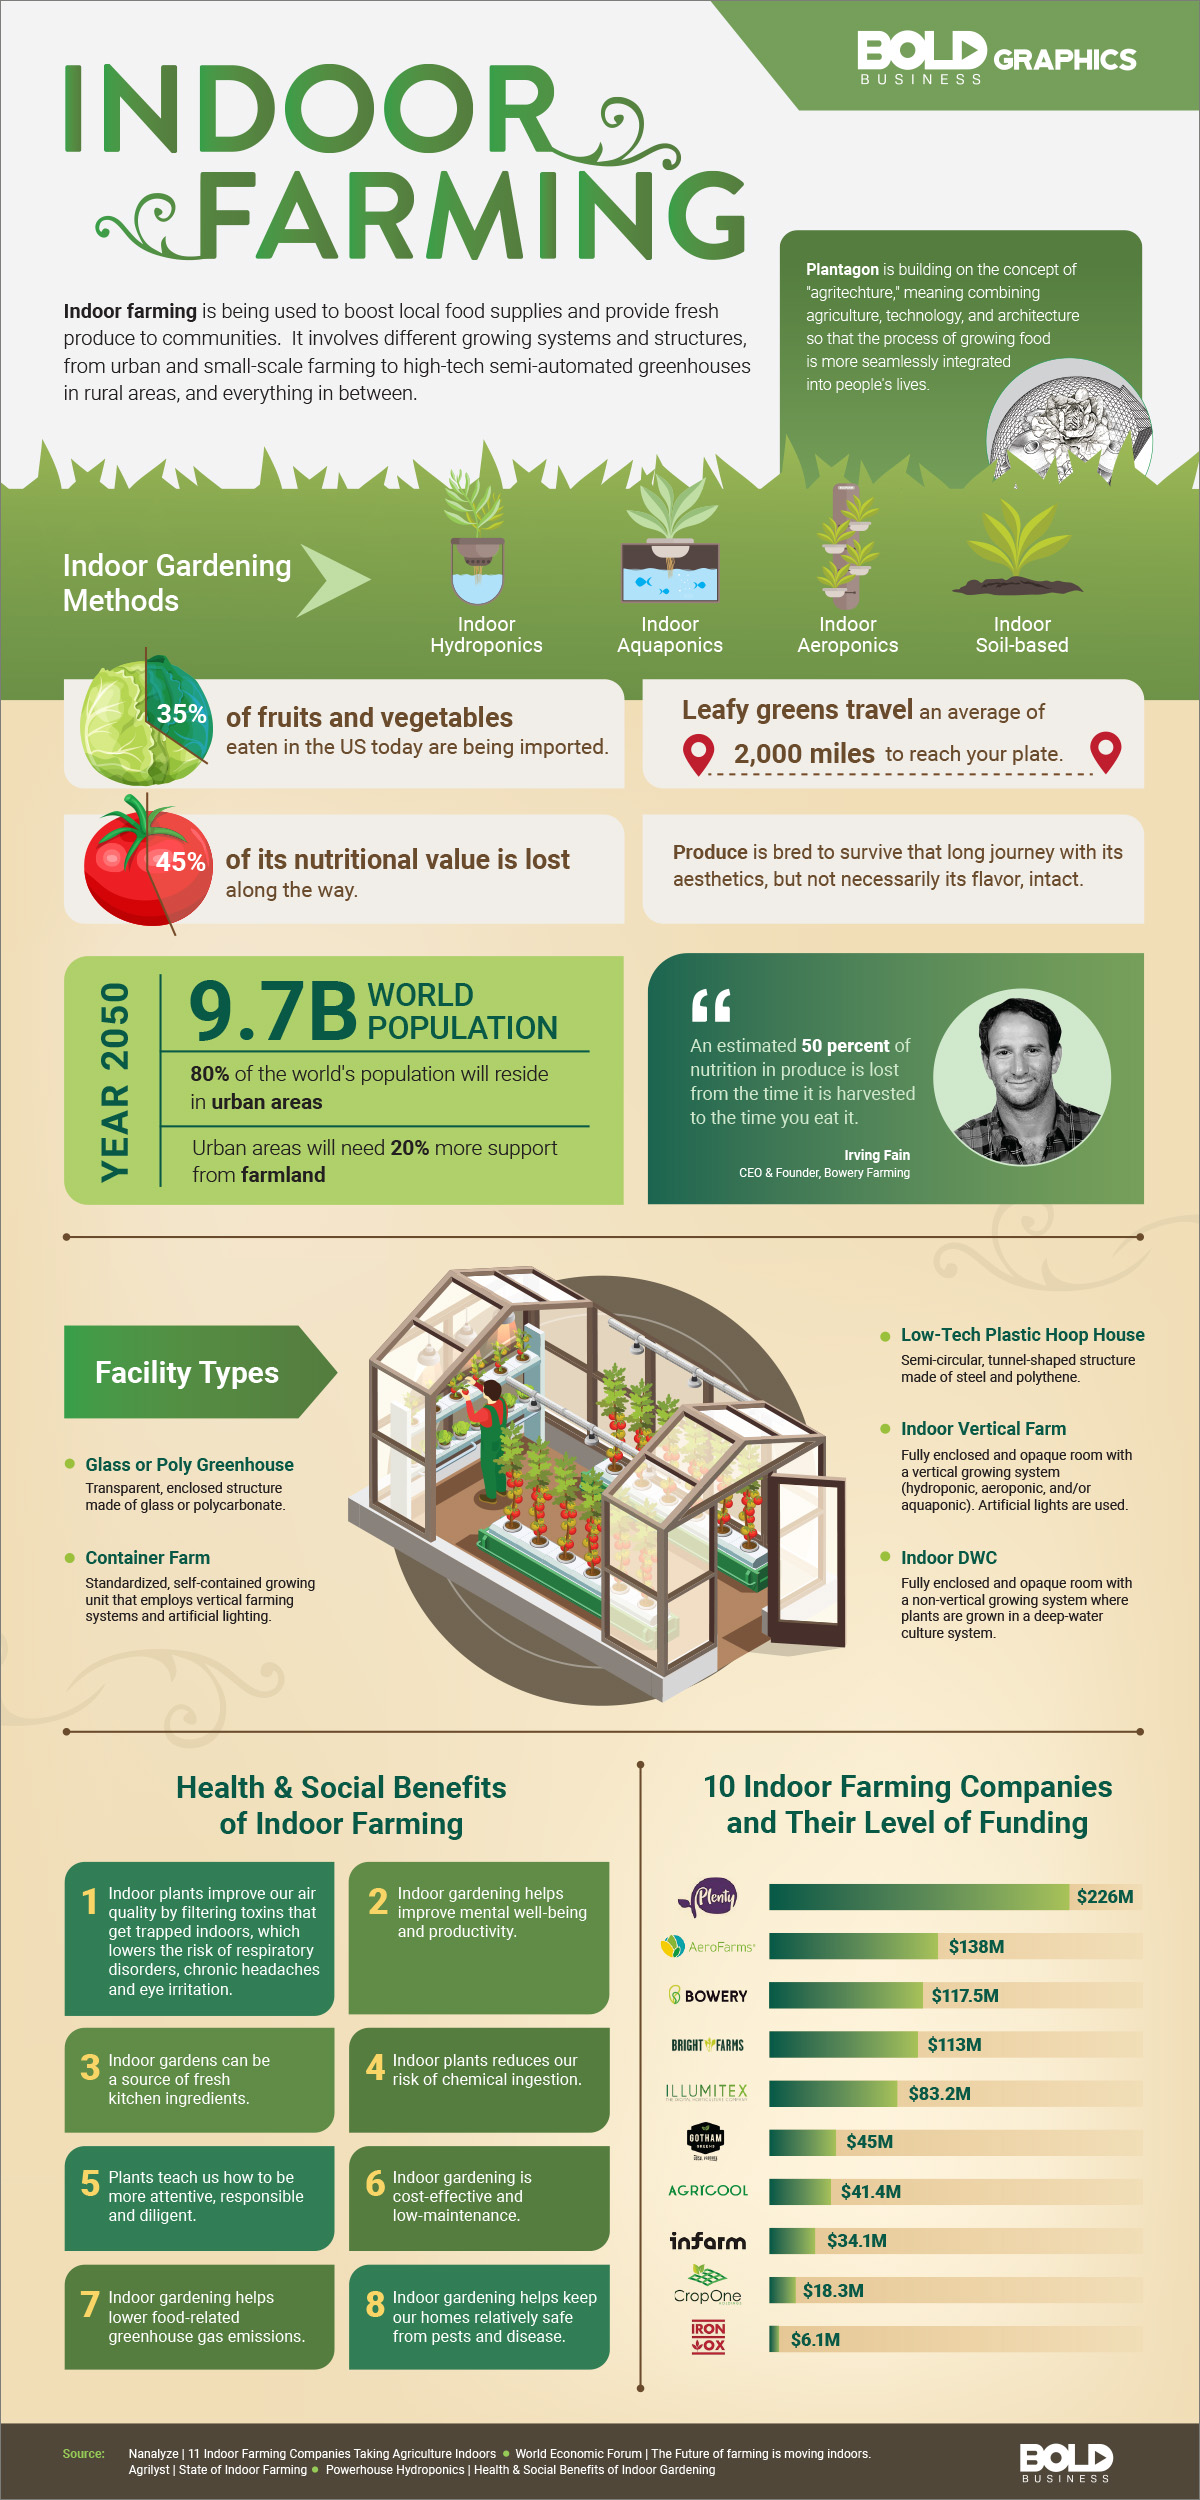 Indoor Farming: Solving Global Food Security Challenges Infographic